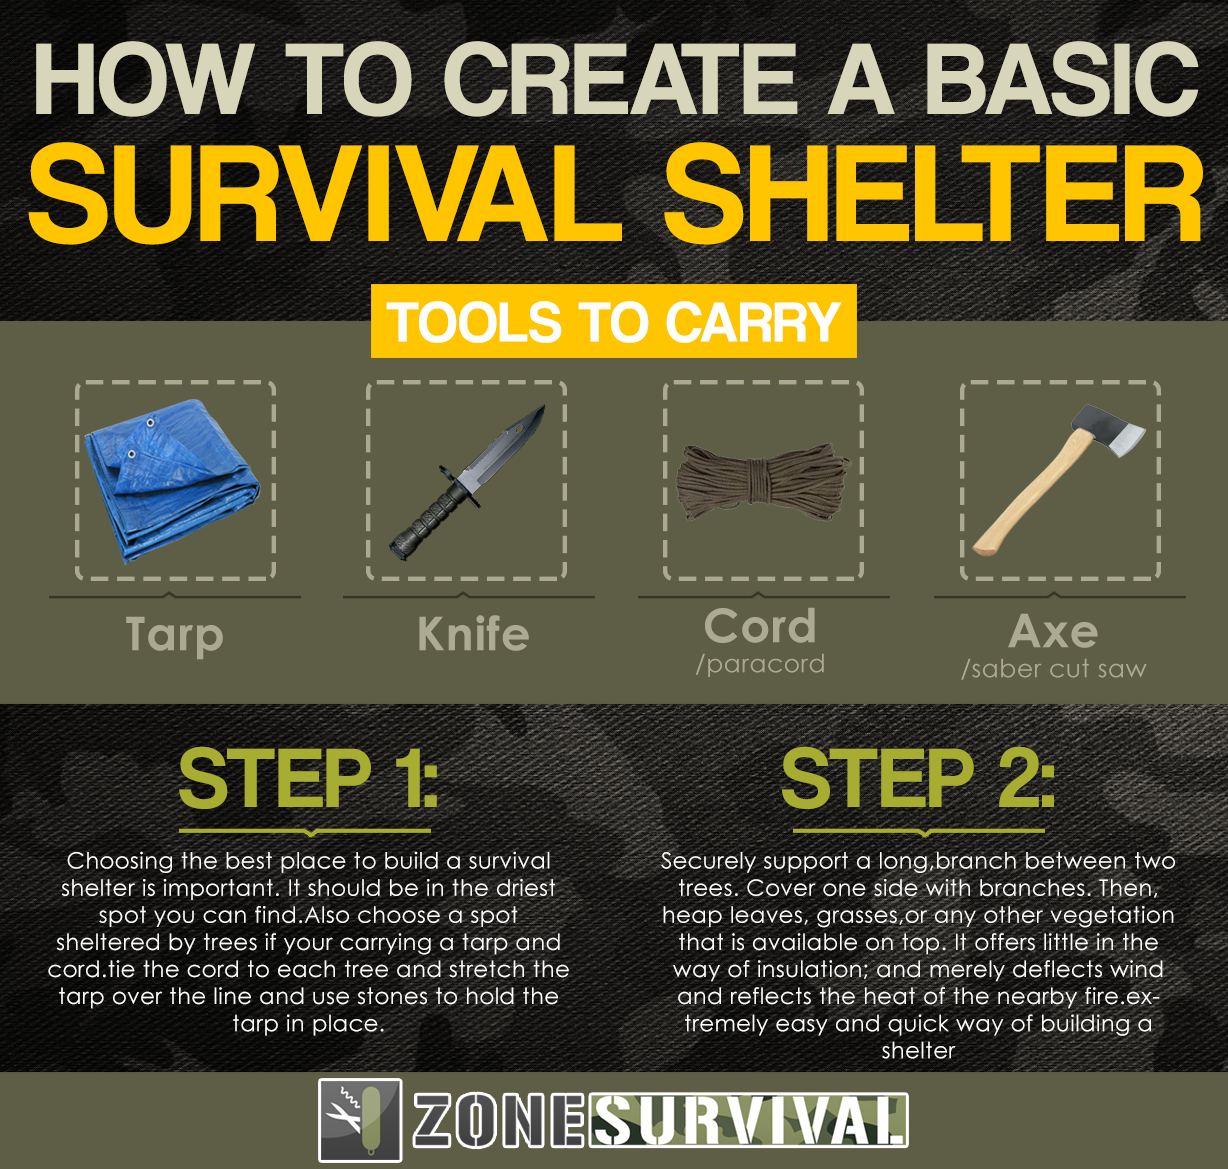 how-to-create-a-basic-survival-shelter